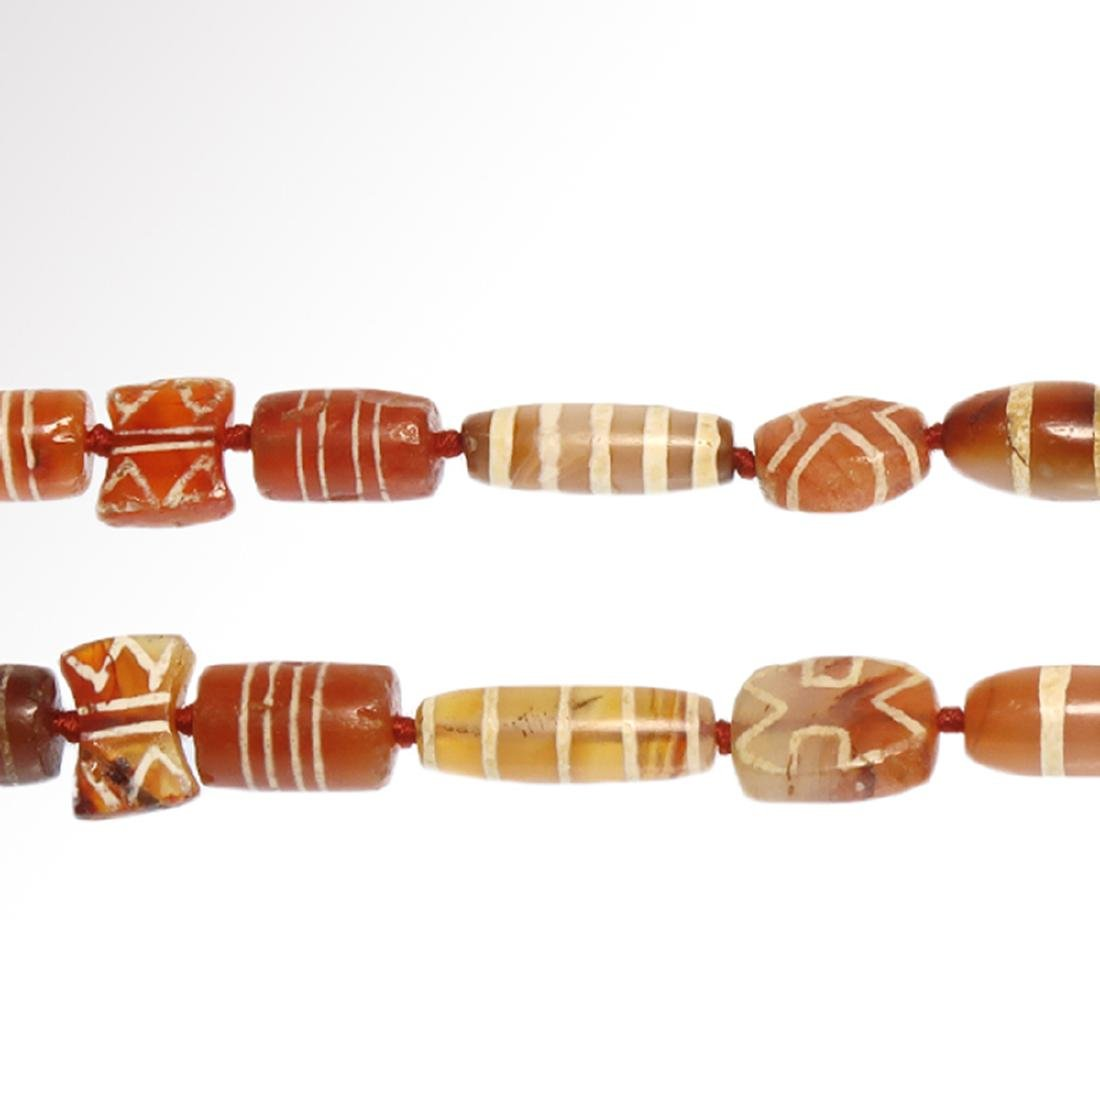 Cornelian Etched Beads Necklace, Near Eastern, 1st - 4